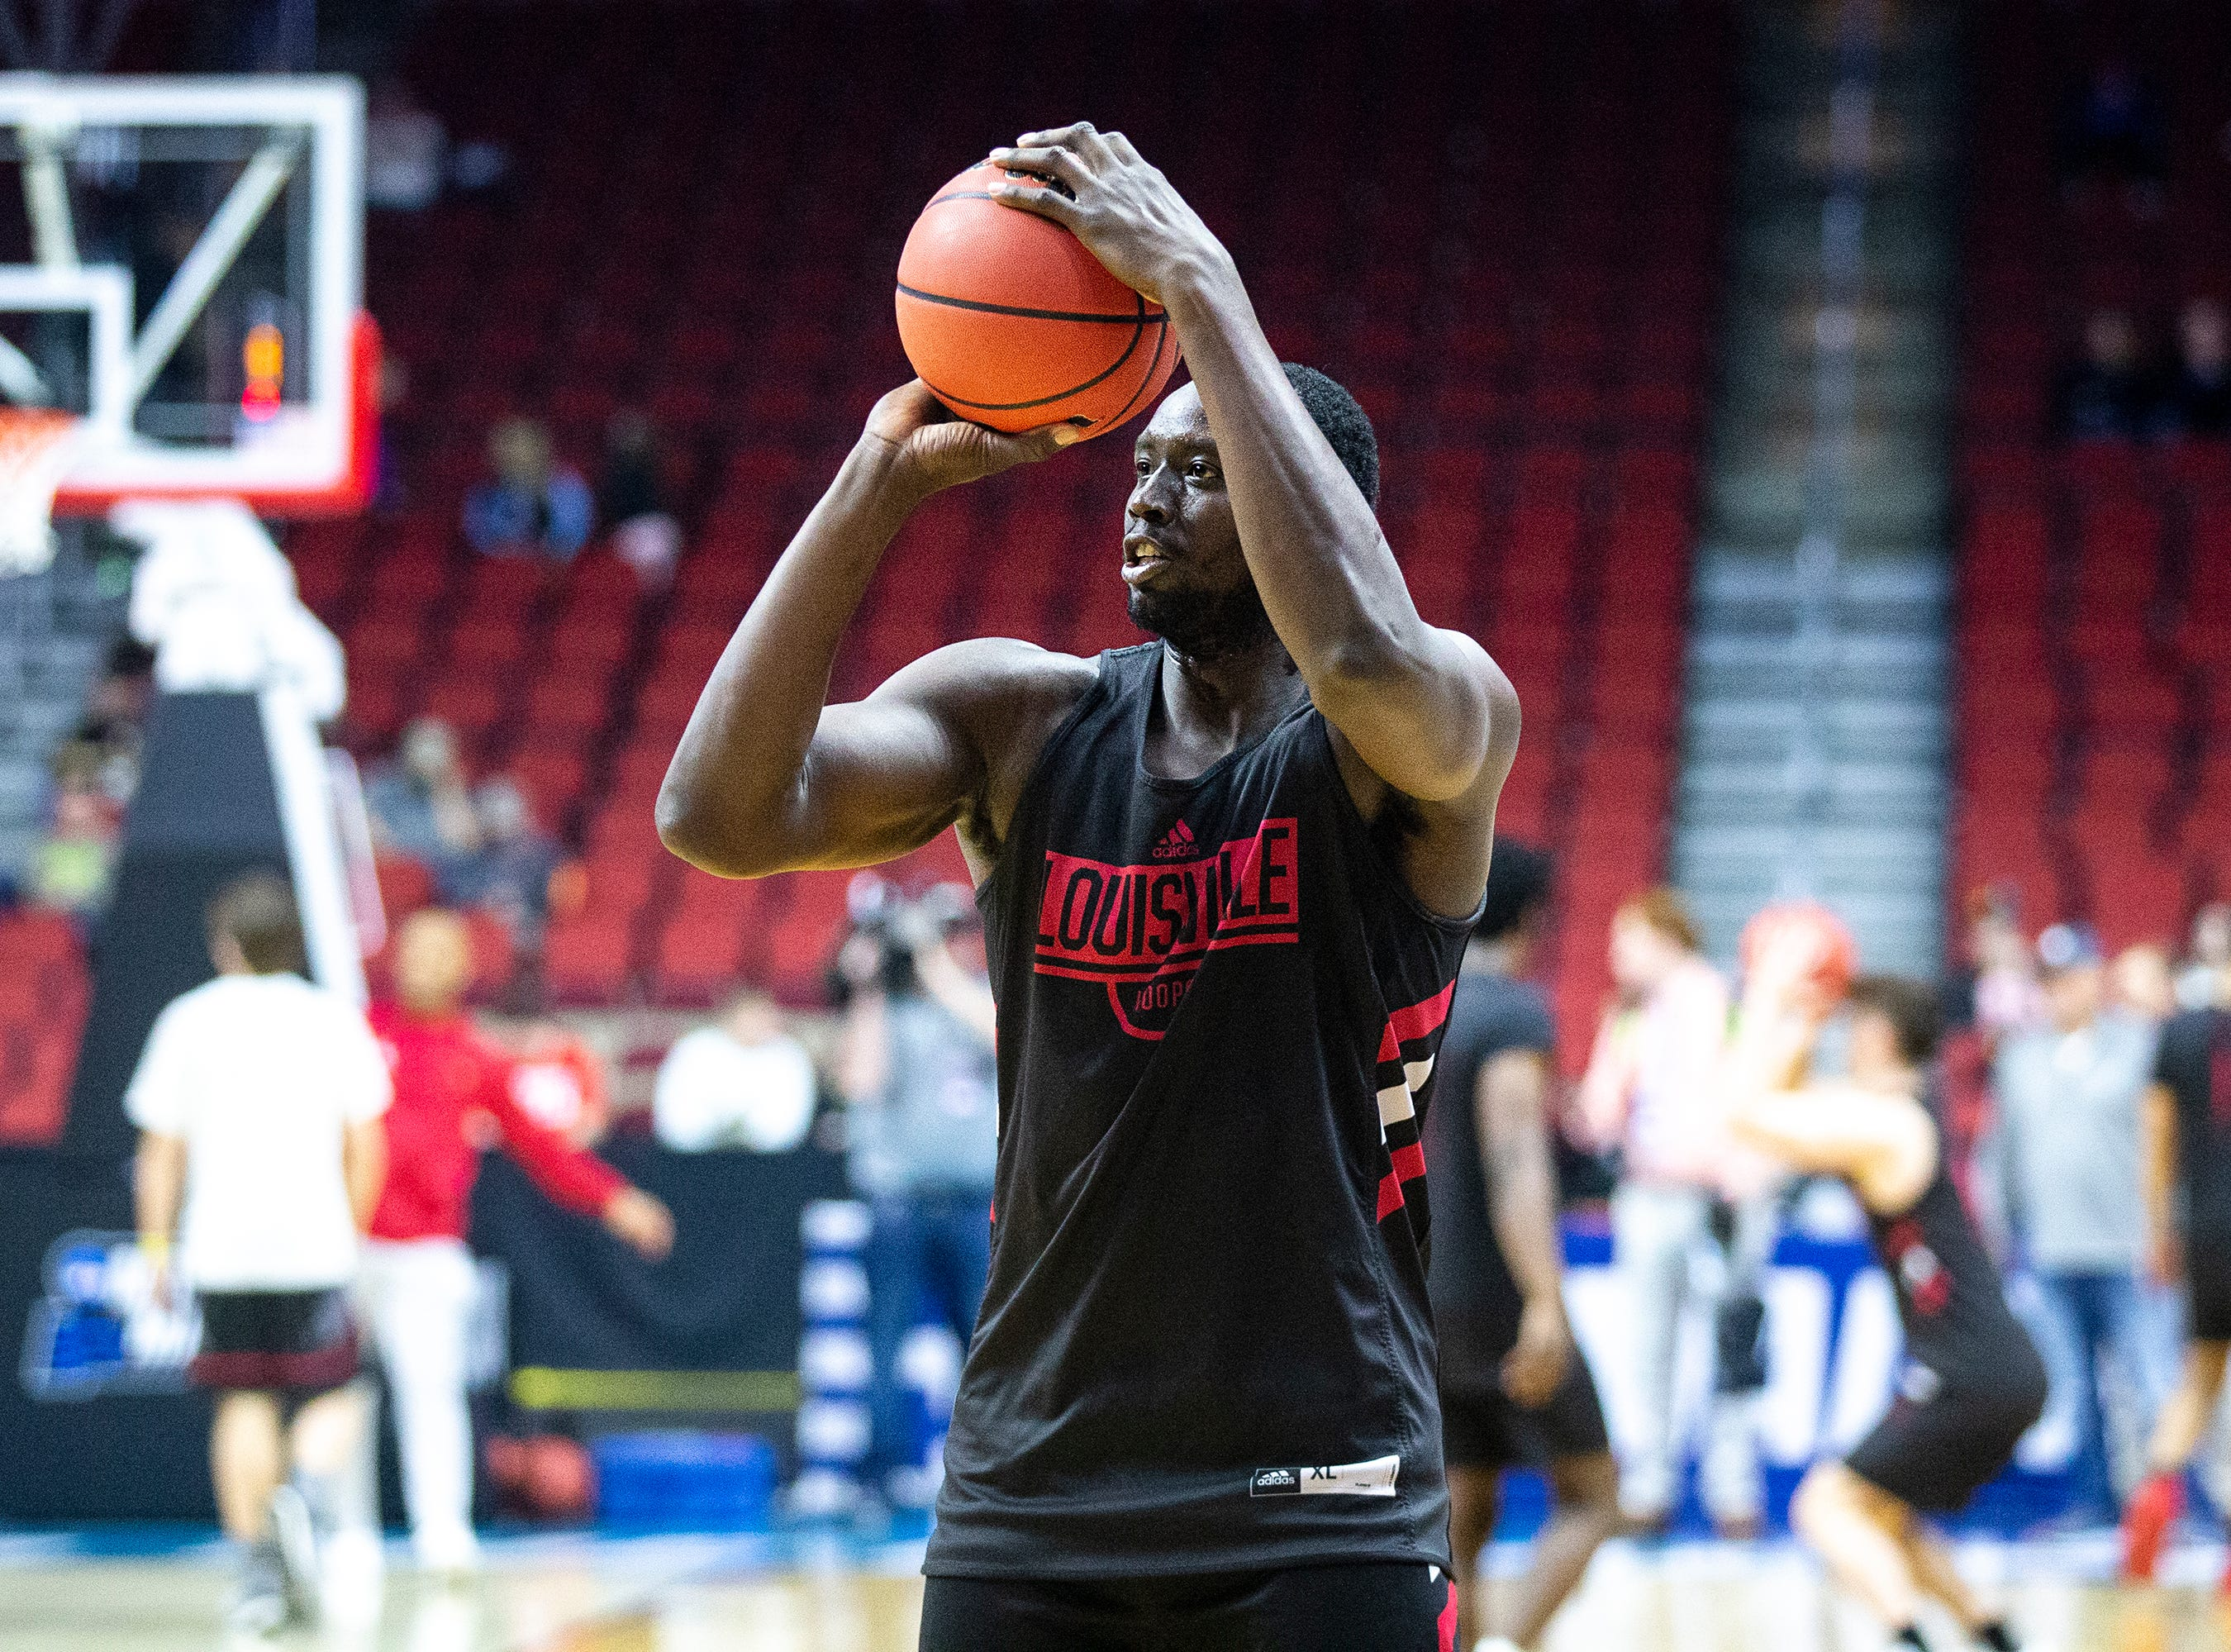 Louisville's Akoy Agau shoots the ball during Louisville's open practice before the first round of the NCAA Men's Basketball Tournament on Wednesday, March 20, 2019, at Wells Fargo Arena in Des Moines, Iowa.